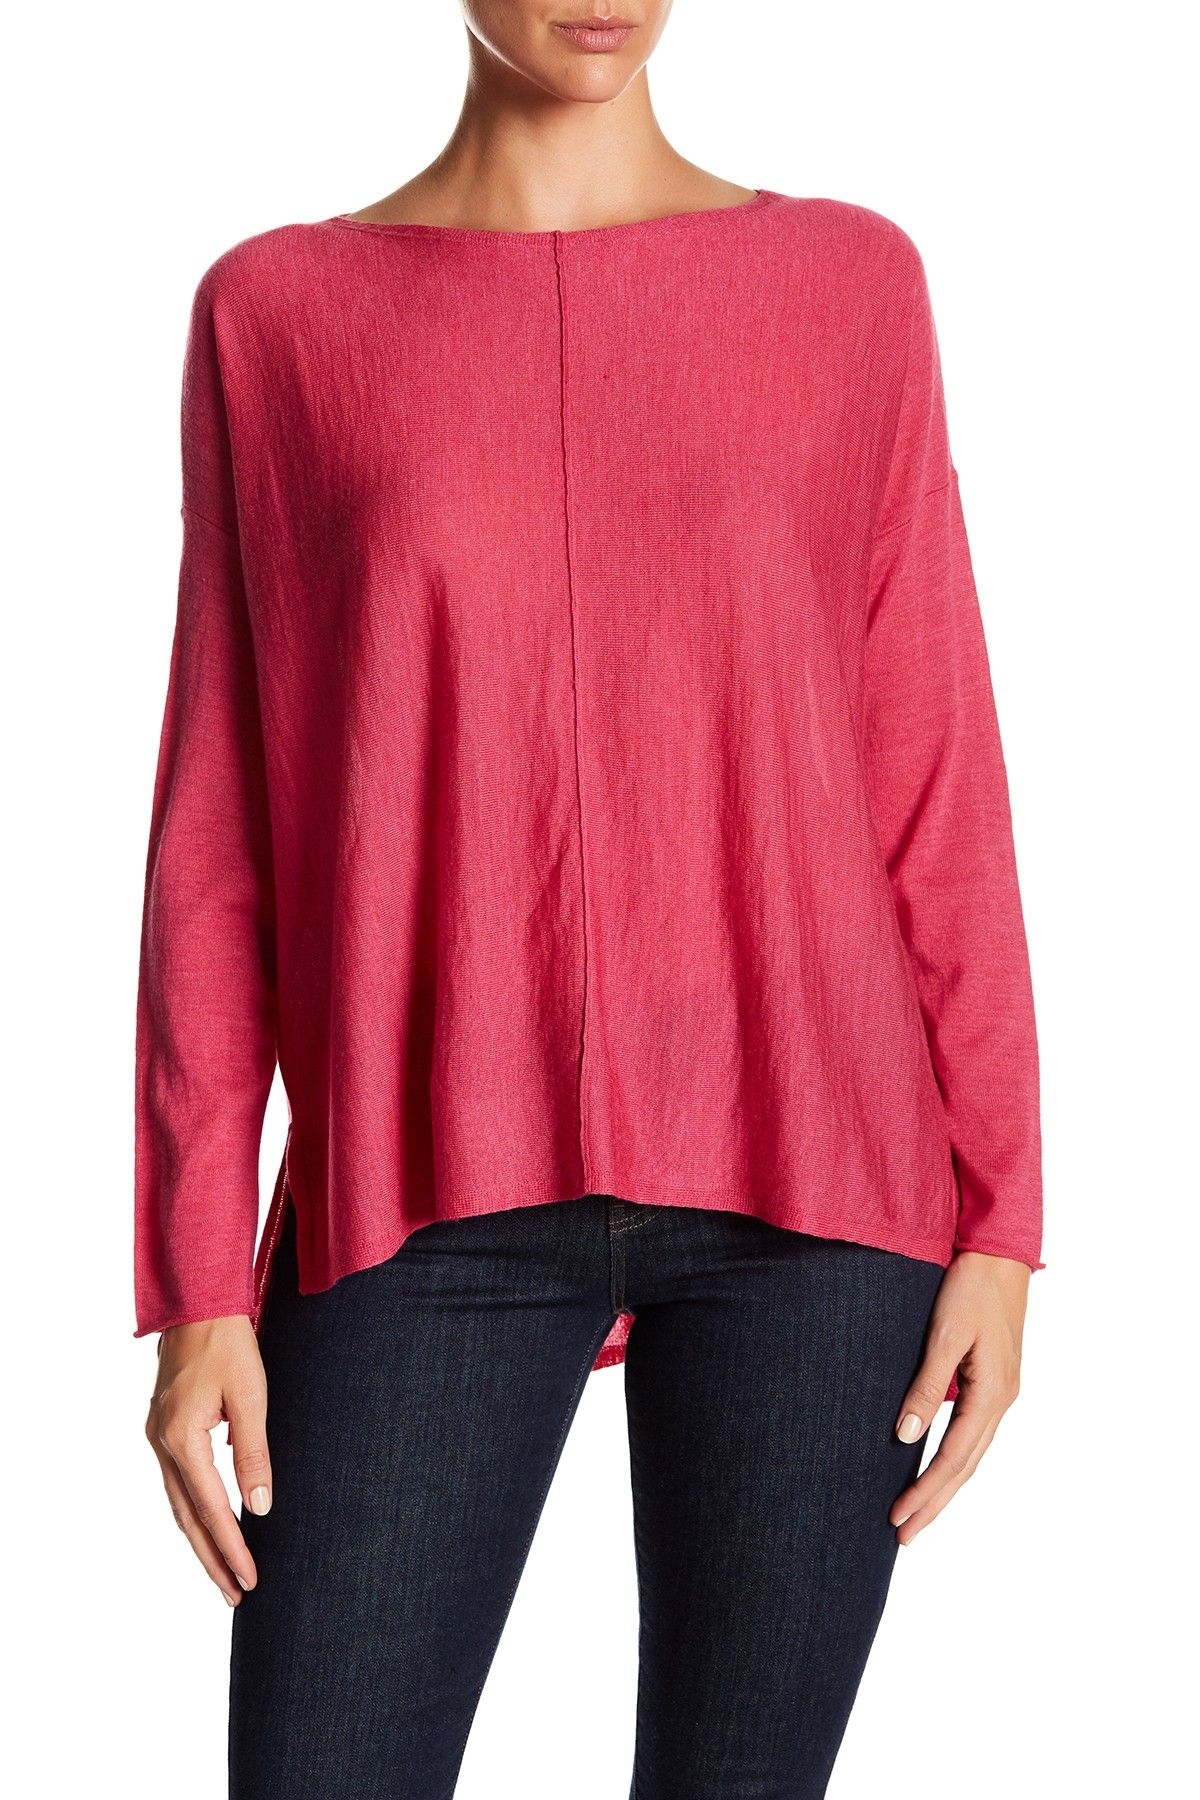 rack bateau product boxy blend fisher nordstrom linen crop eileen shop neck sweater